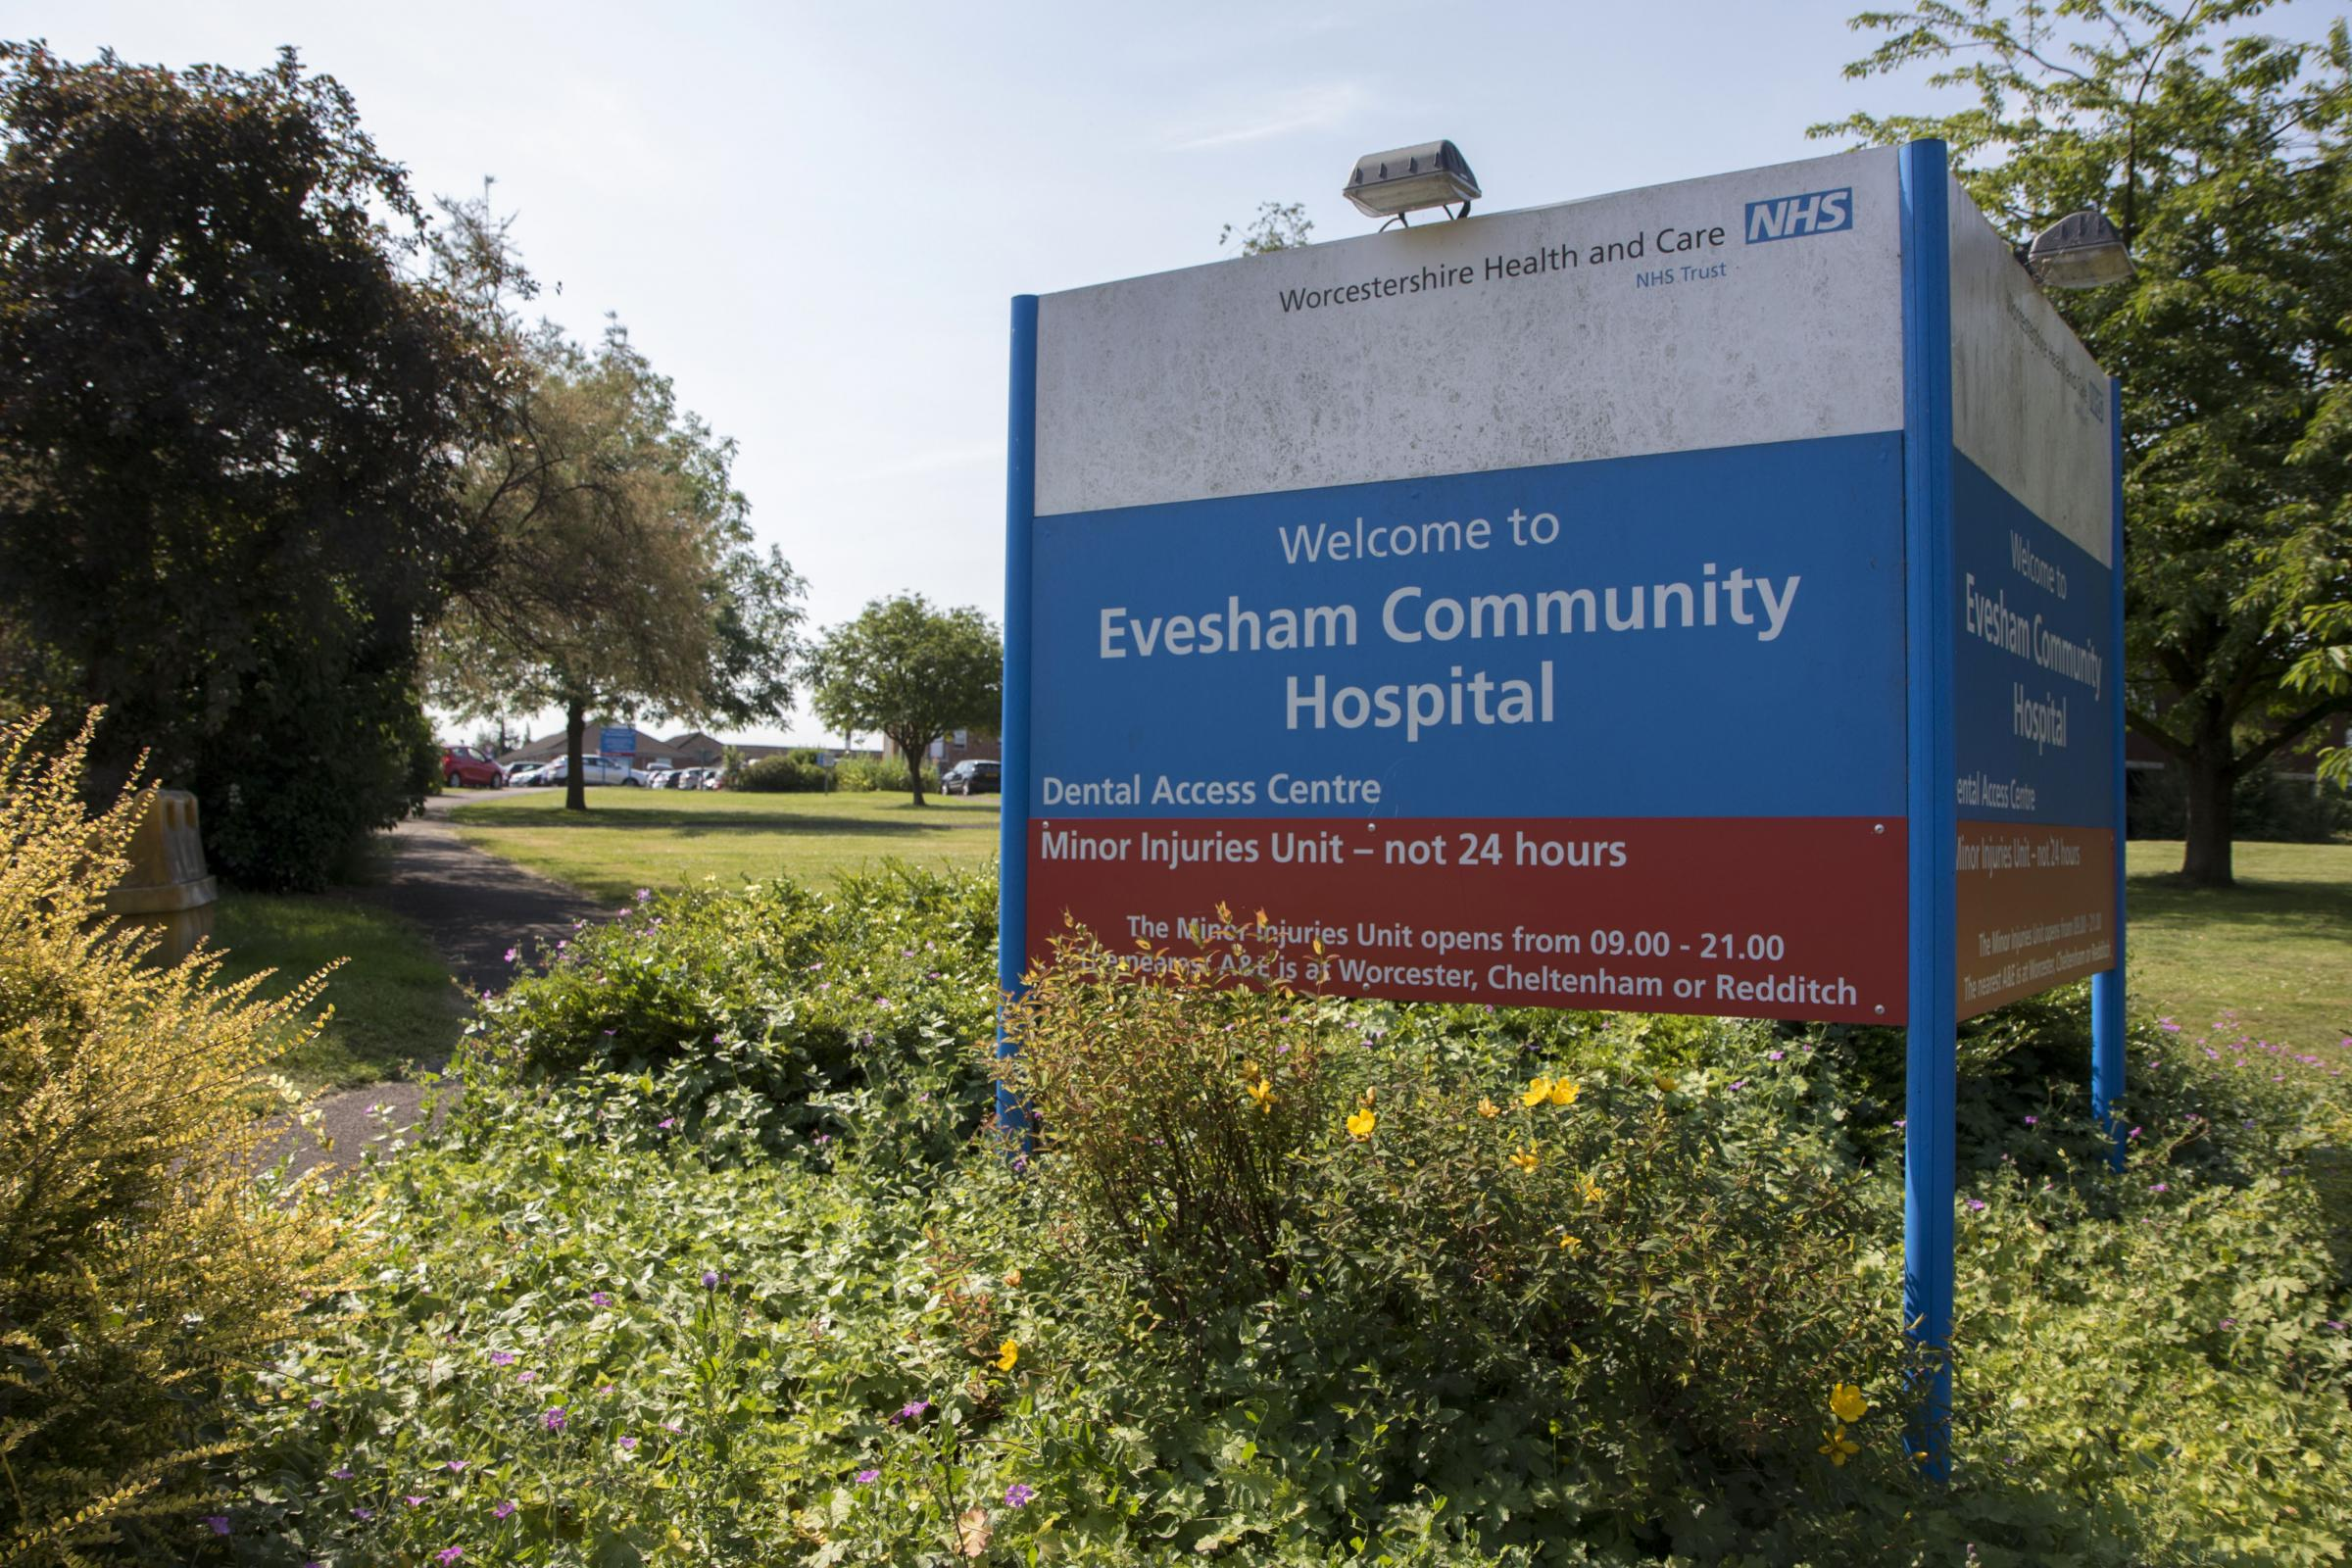 Evesham Community Hospital